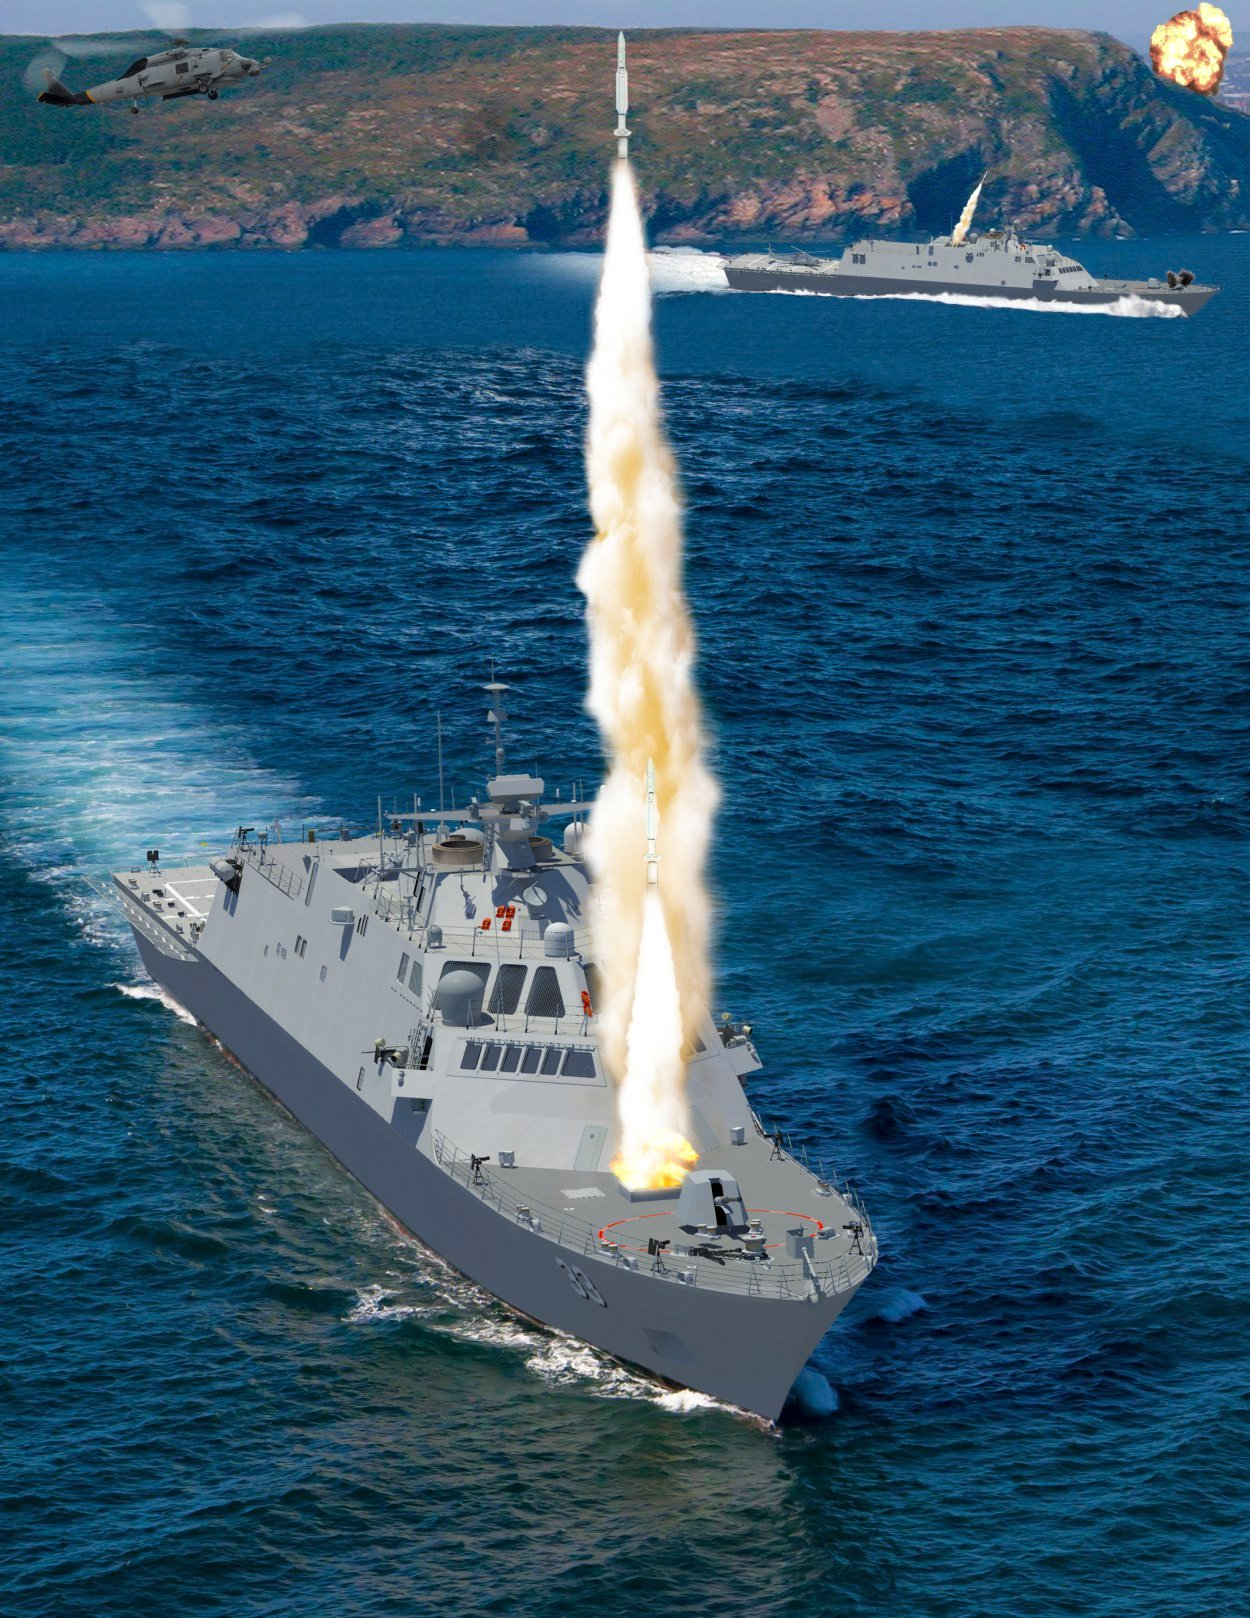 An artist's conception for variants of the Freedom-class LCS design provided to USNI News. Lockheed Martin Image